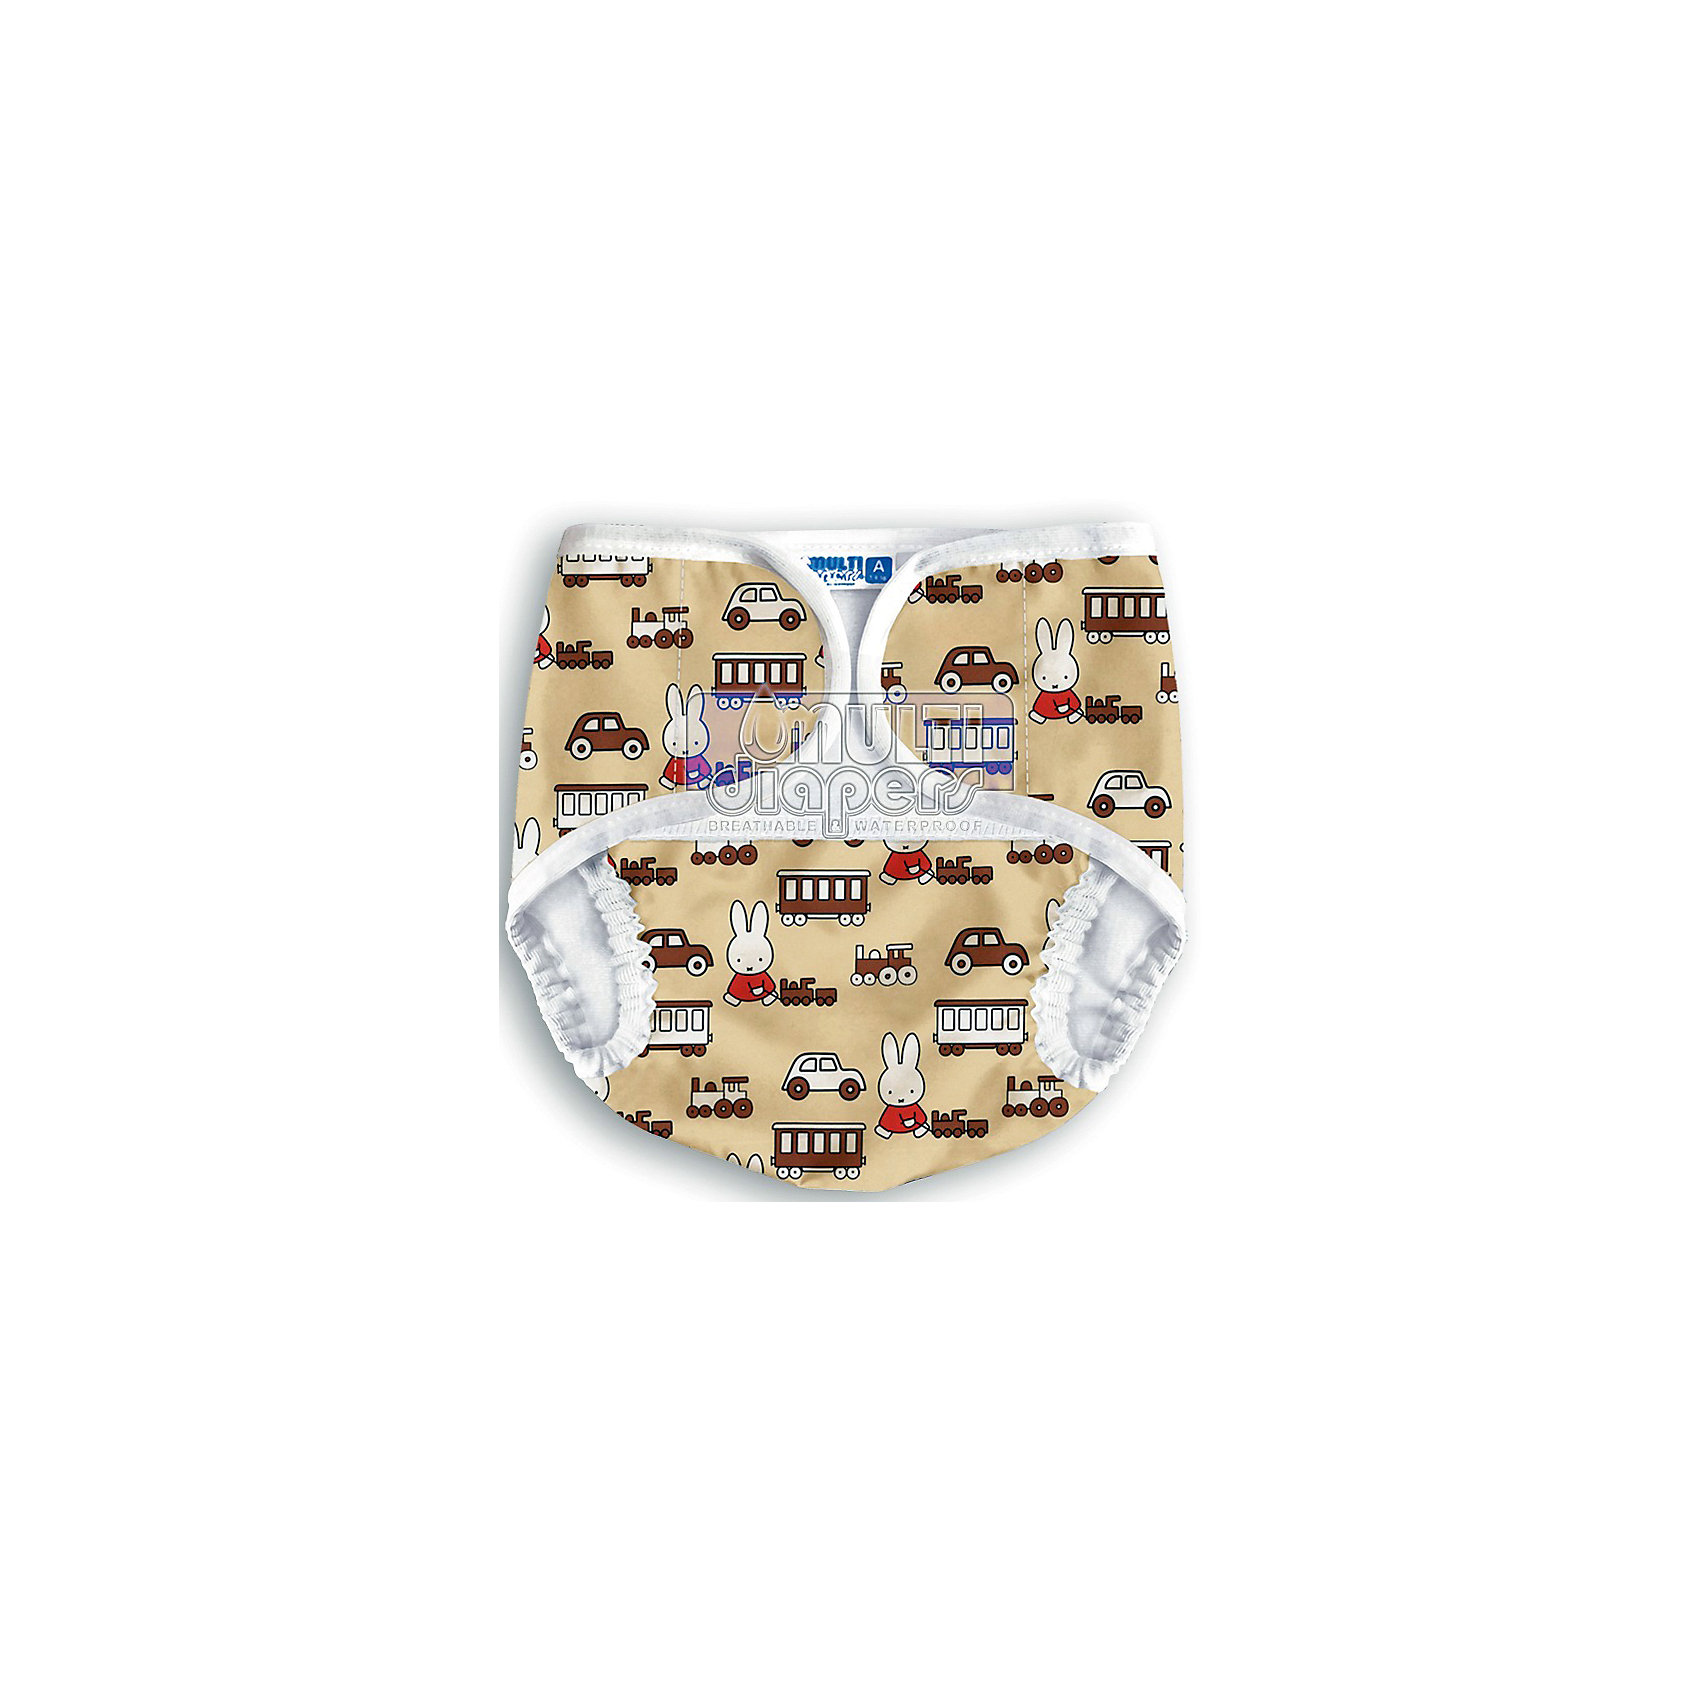 Multi Diapers Мульти-дайперсы Зайка с мишинкой, B 4-9 кг., Multi Diapers, бежевый new smb female jack right angle connector switch fakra convertor rg316 wholesale fast ship 15cm 6 adapter